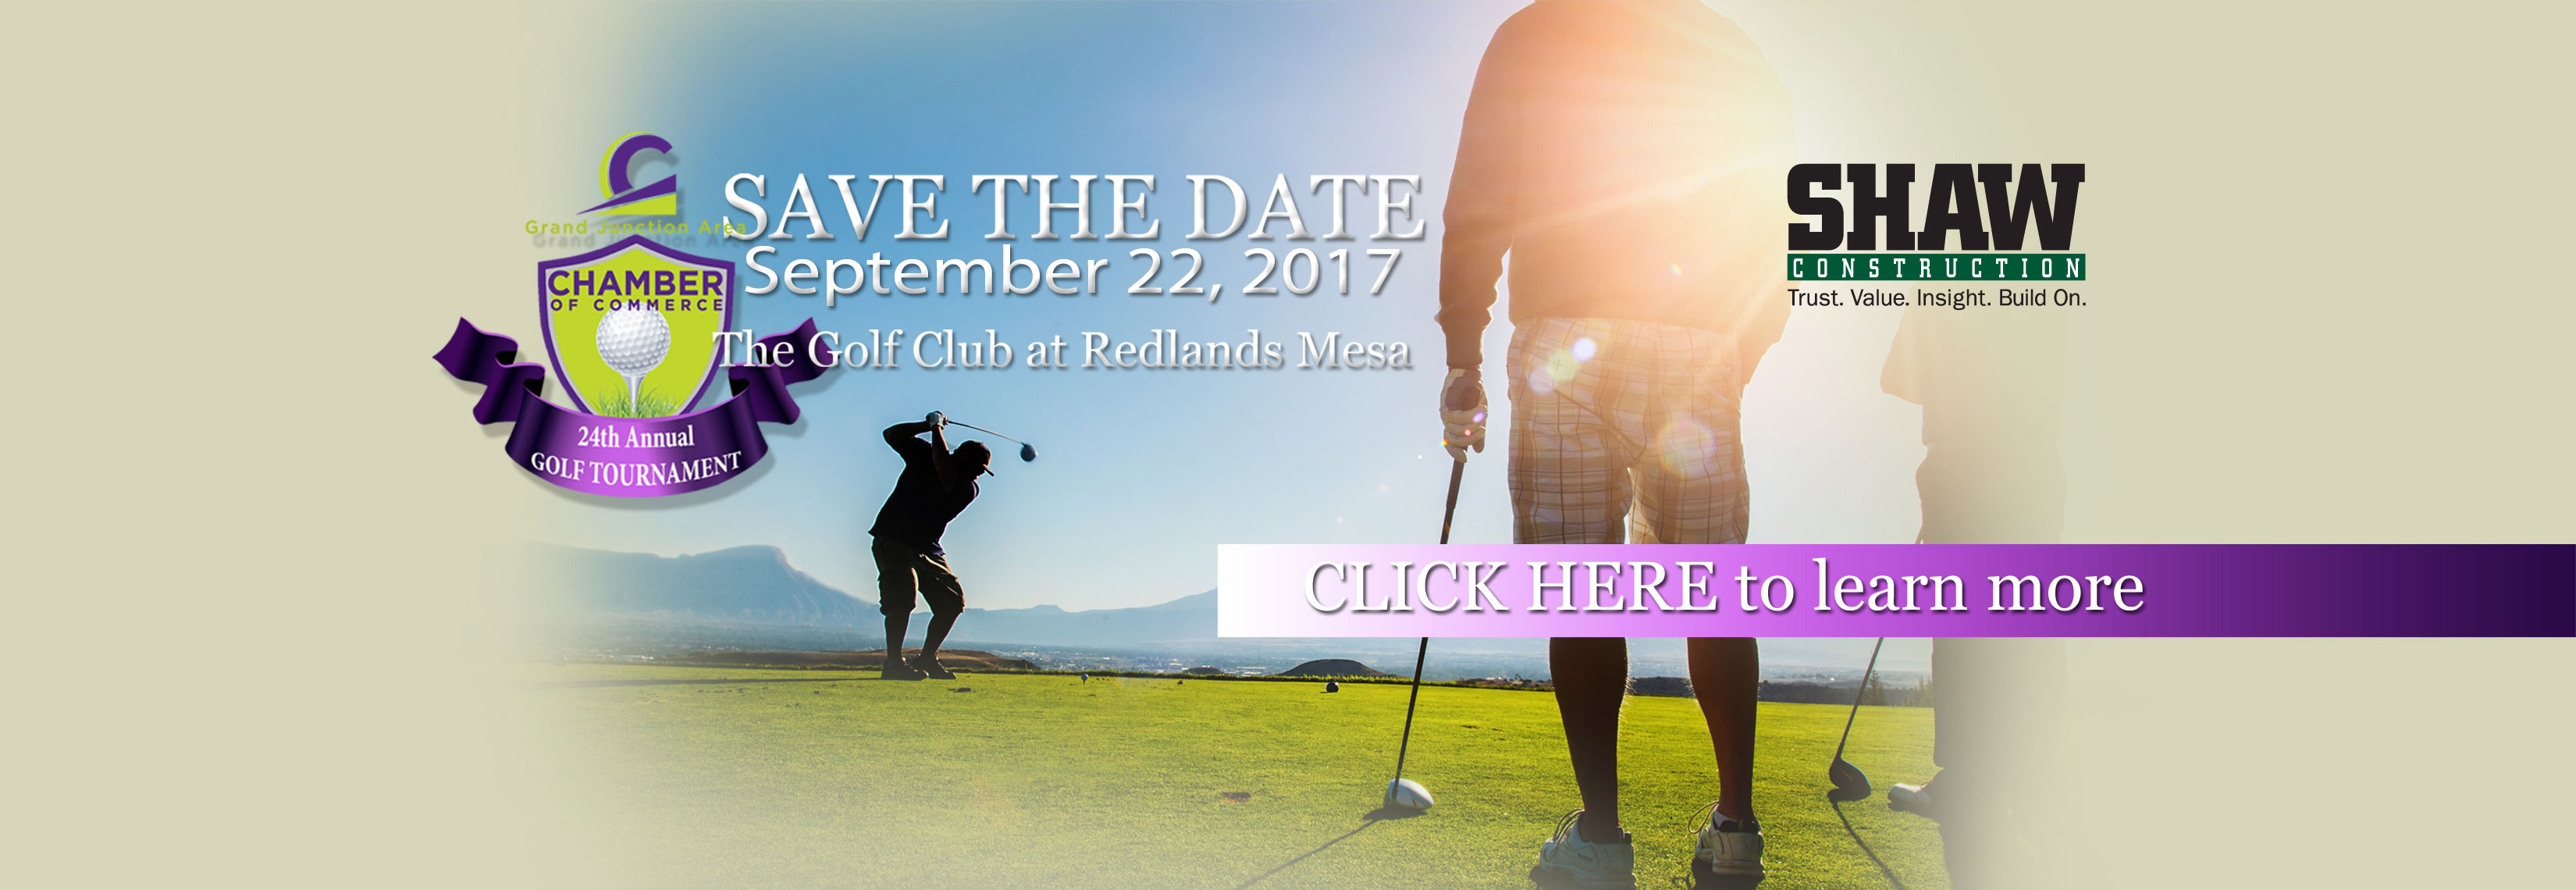 Save The Date - Grand Junction Chamber of Commerce Golf Tournament September 22, 2017